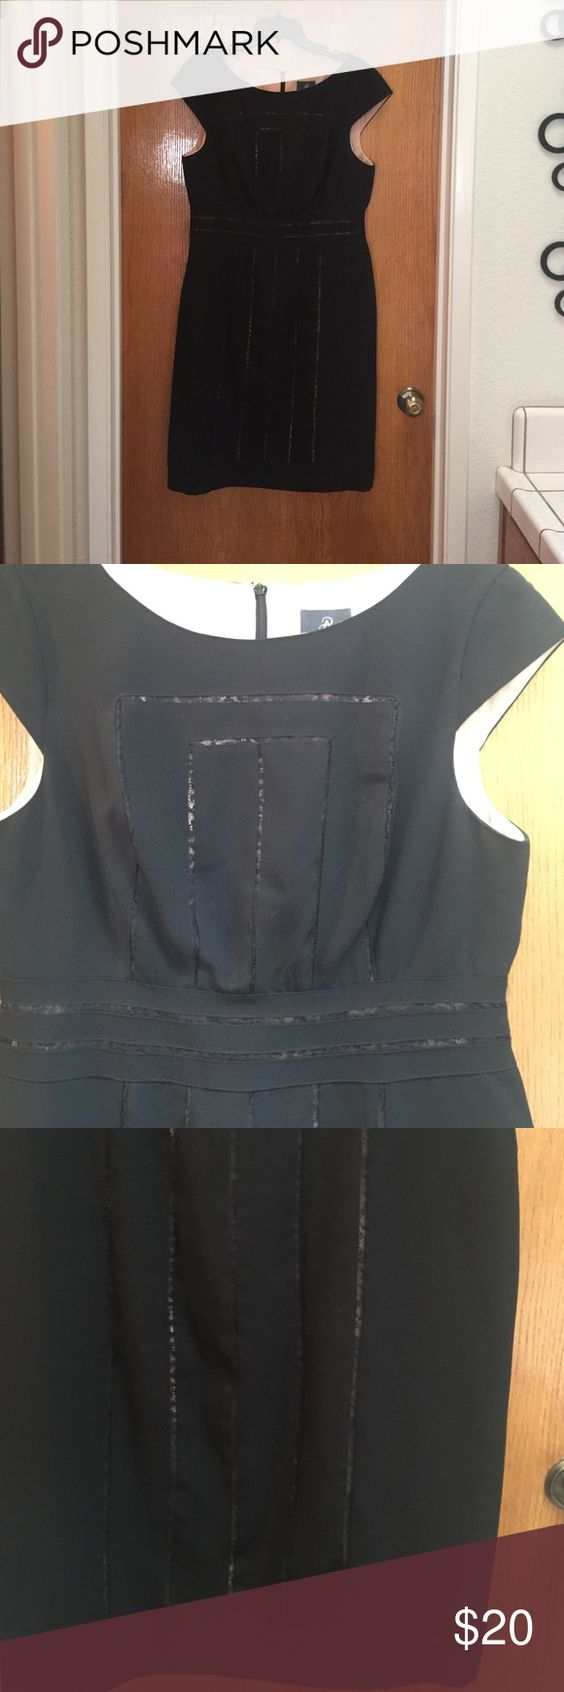 Little Black Dress Black dress with lace insets, never worn no tags, Size 14 knee length Adrianna Papell Dresses Midi